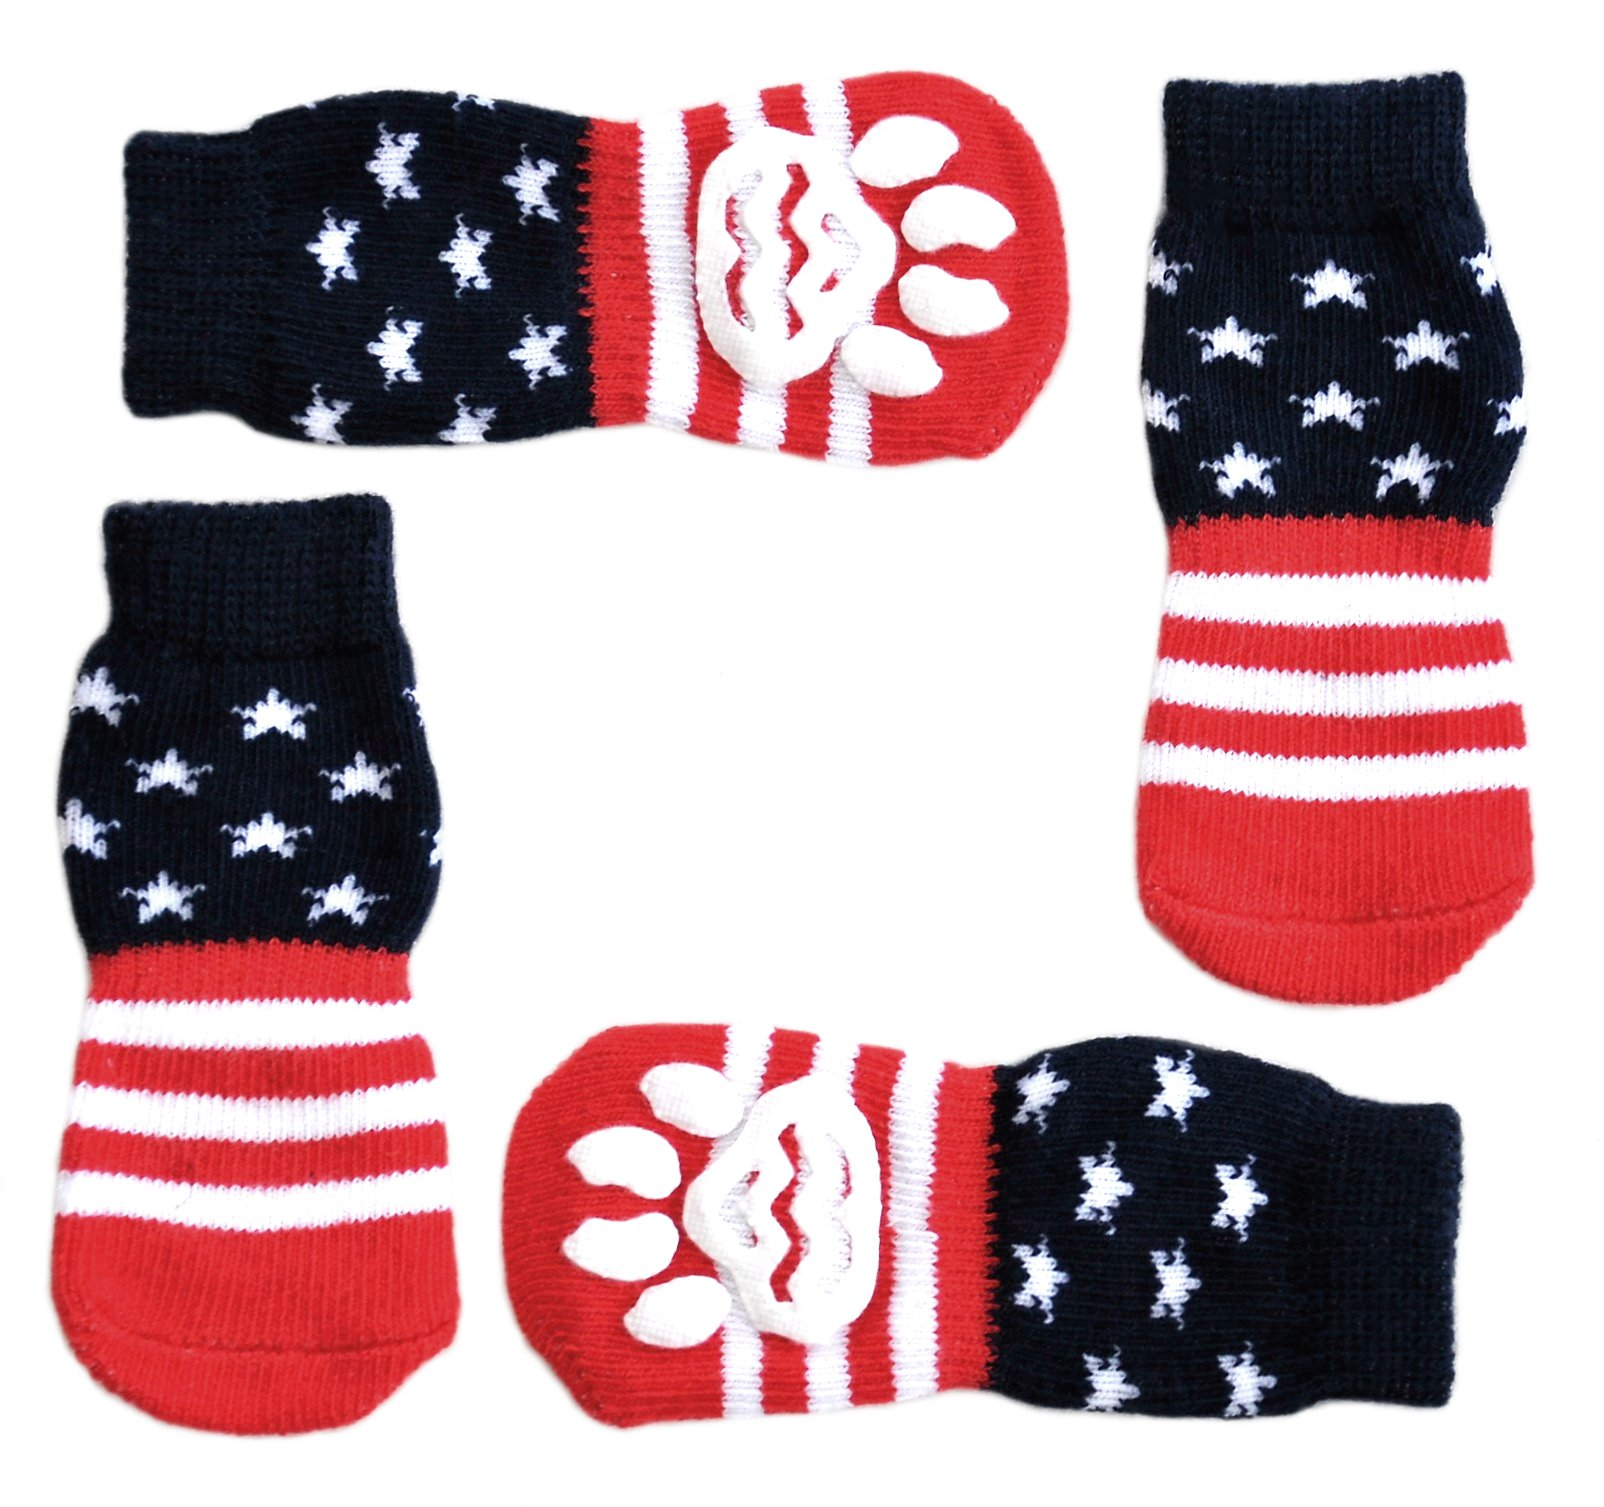 USA Flag Anti-Slip Knit Socks for Pets with Traction Soles for Indoor Wear. Slip On Paw Protectors for Small and Medium Breed Dogs. Stars and Stripes, XS